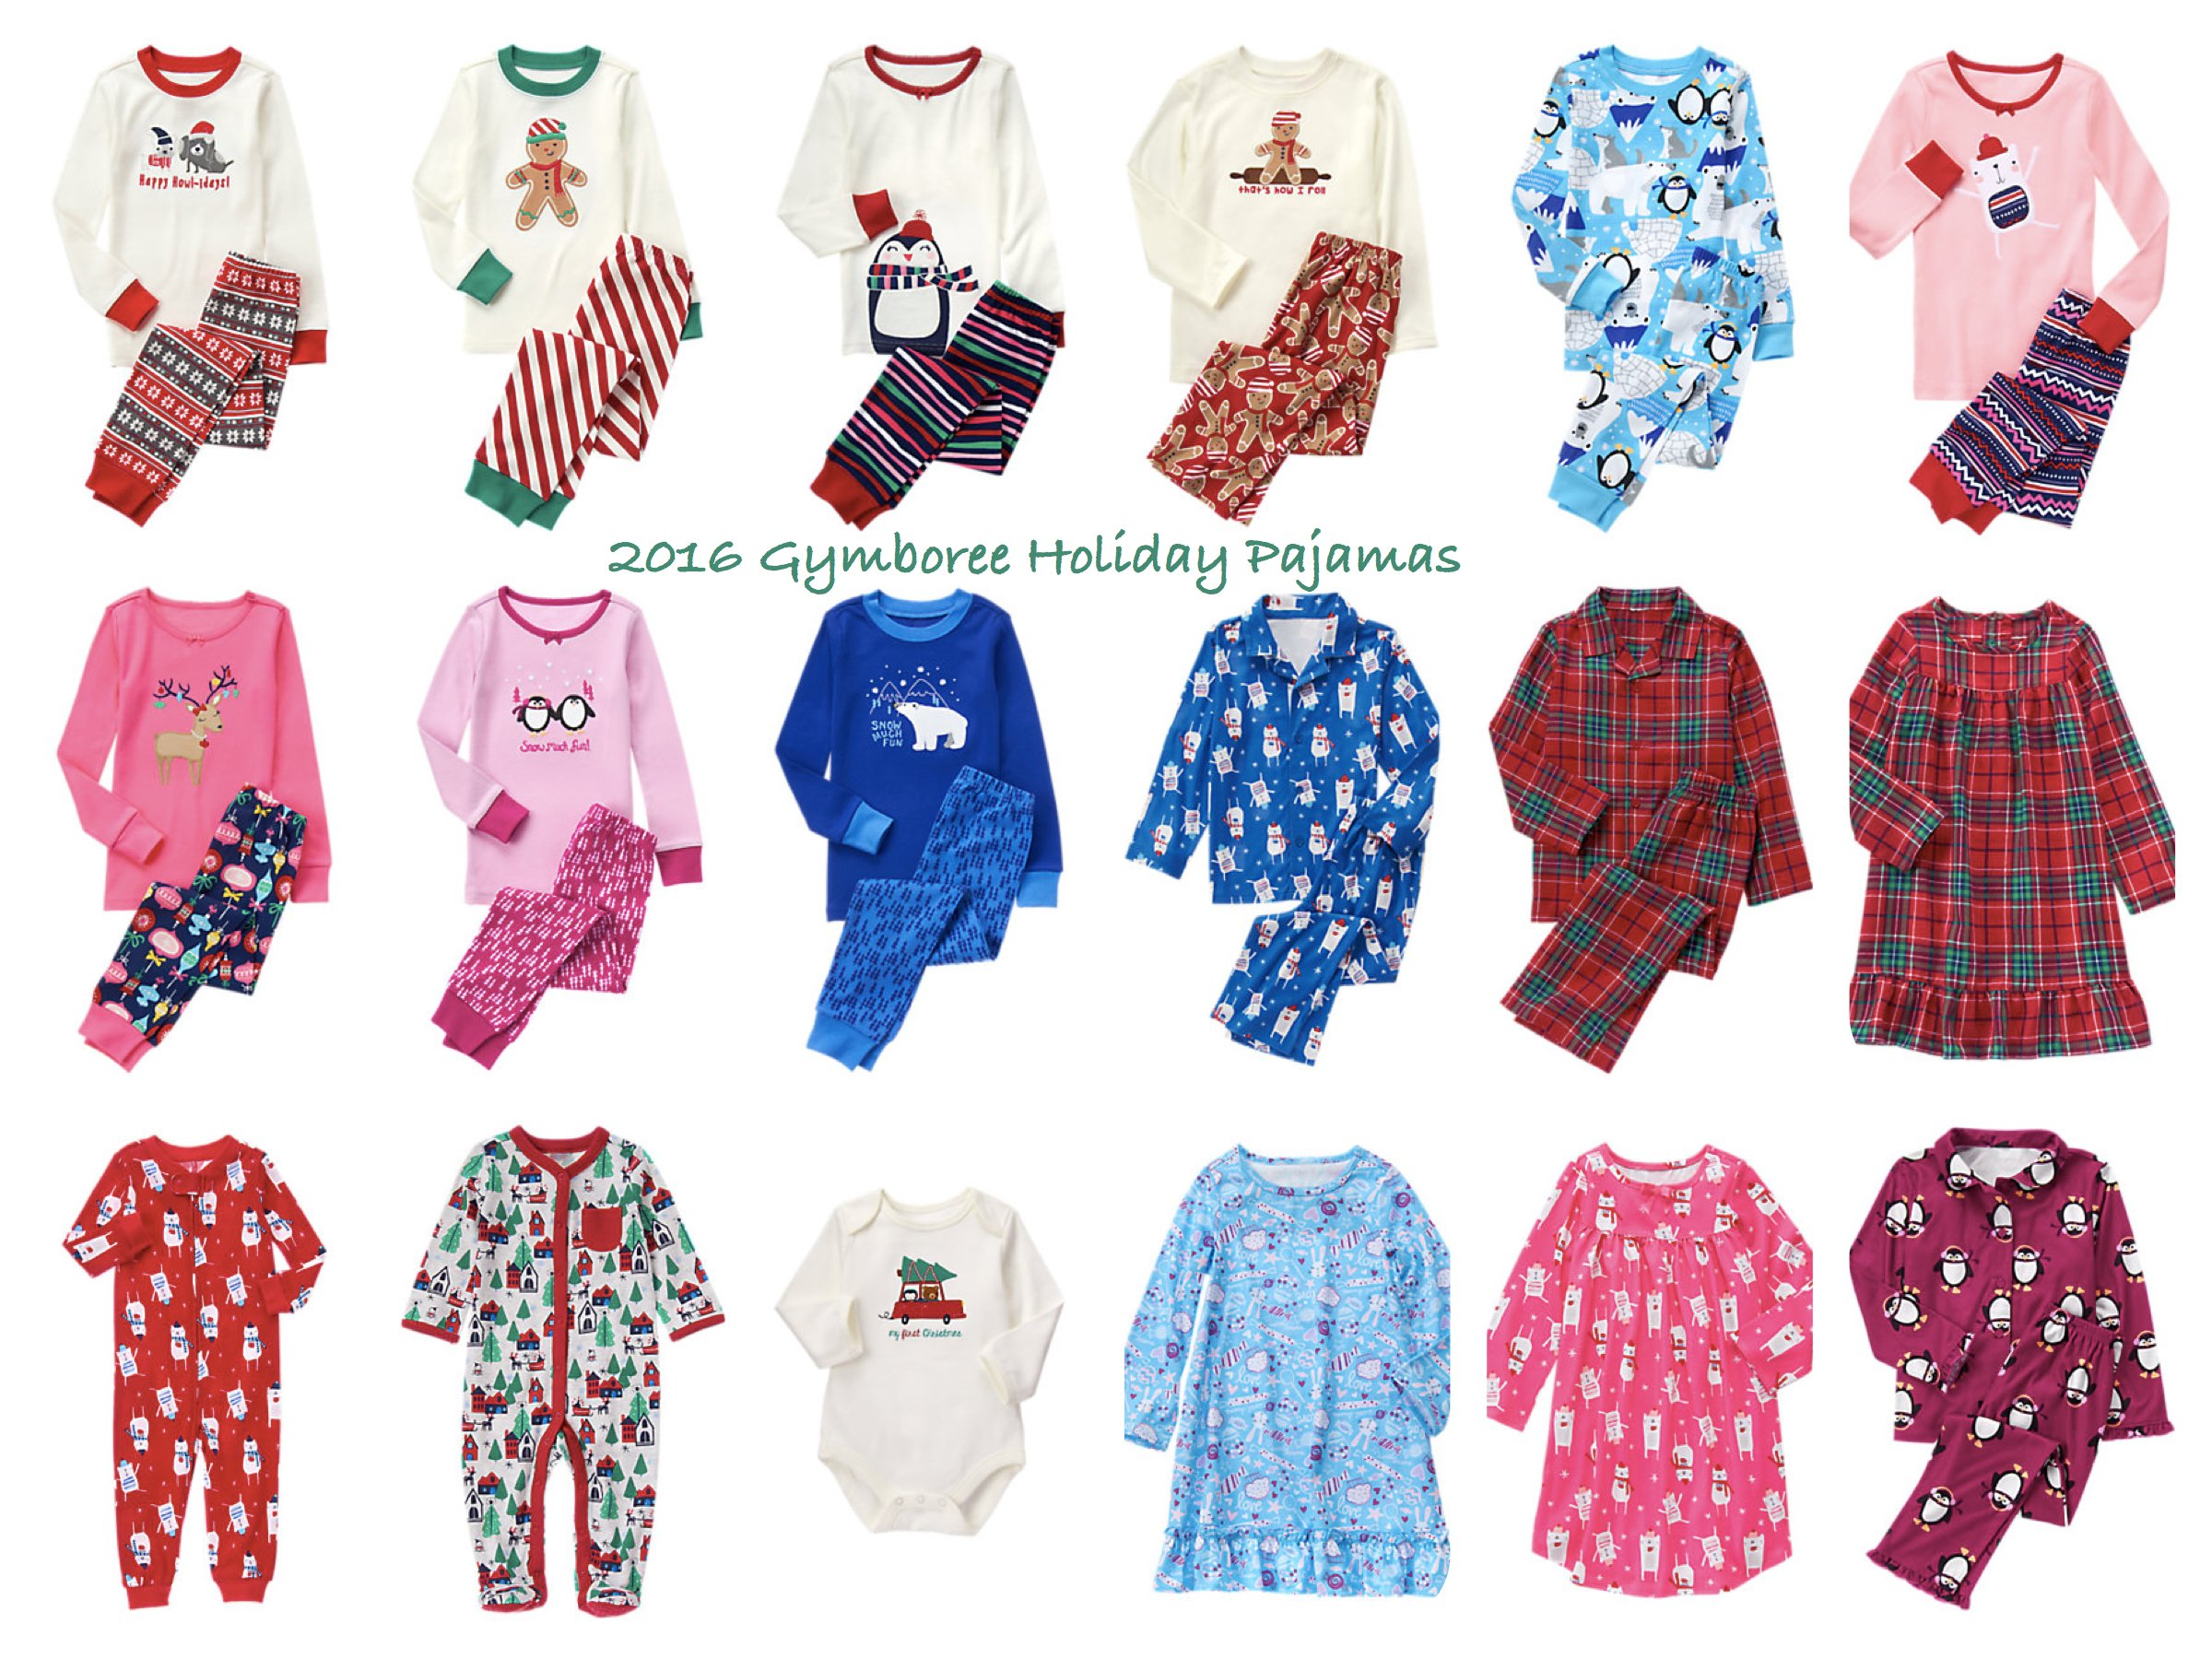 2016 Gymboree Holiday Pajamas